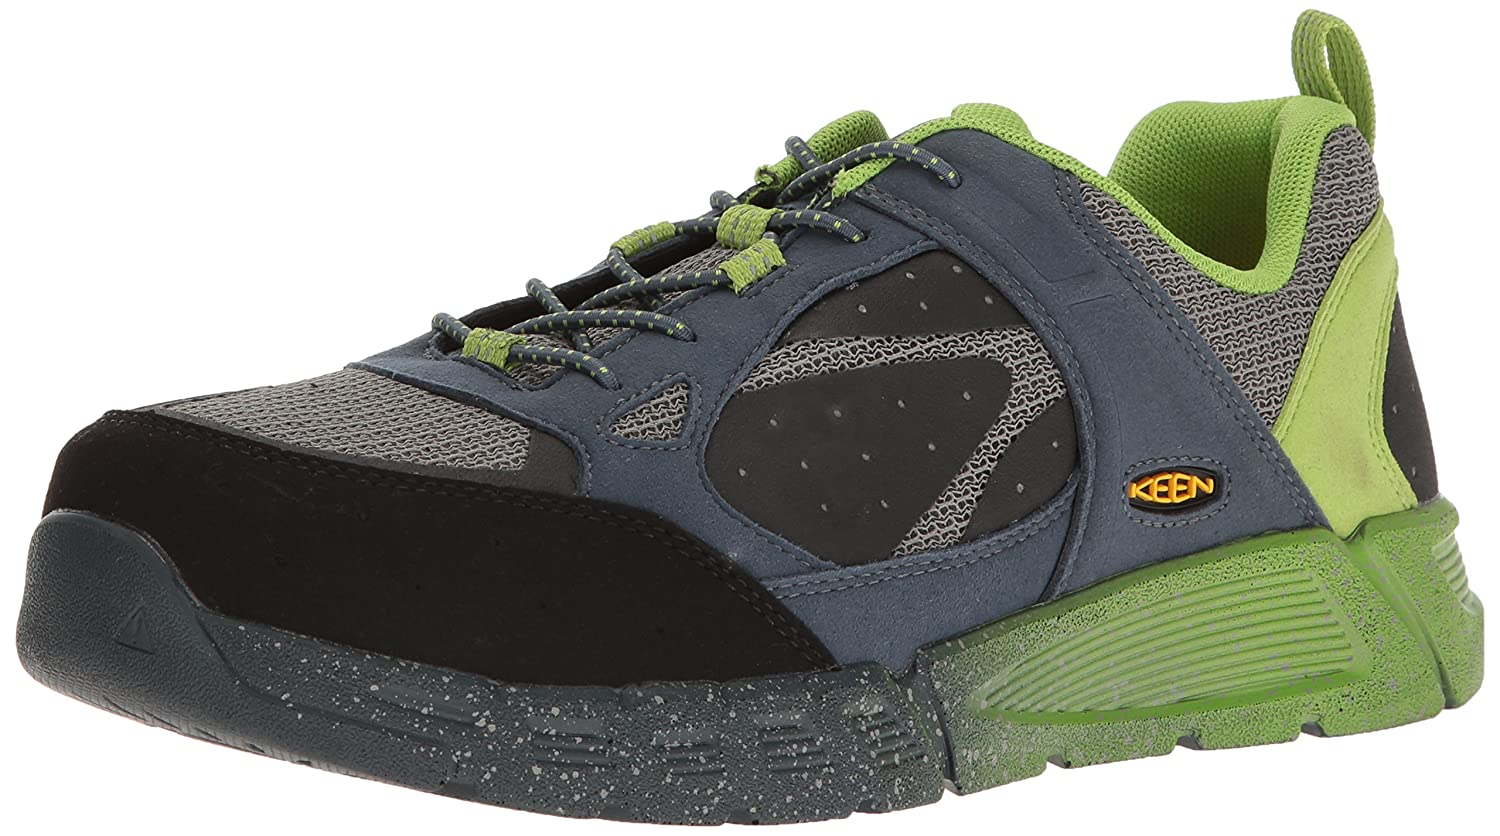 KEEN Utility メンズ B01J27G0C8 11 2E US|Neutral Grey/Greenery Neutral Grey/Greenery 11 2E US